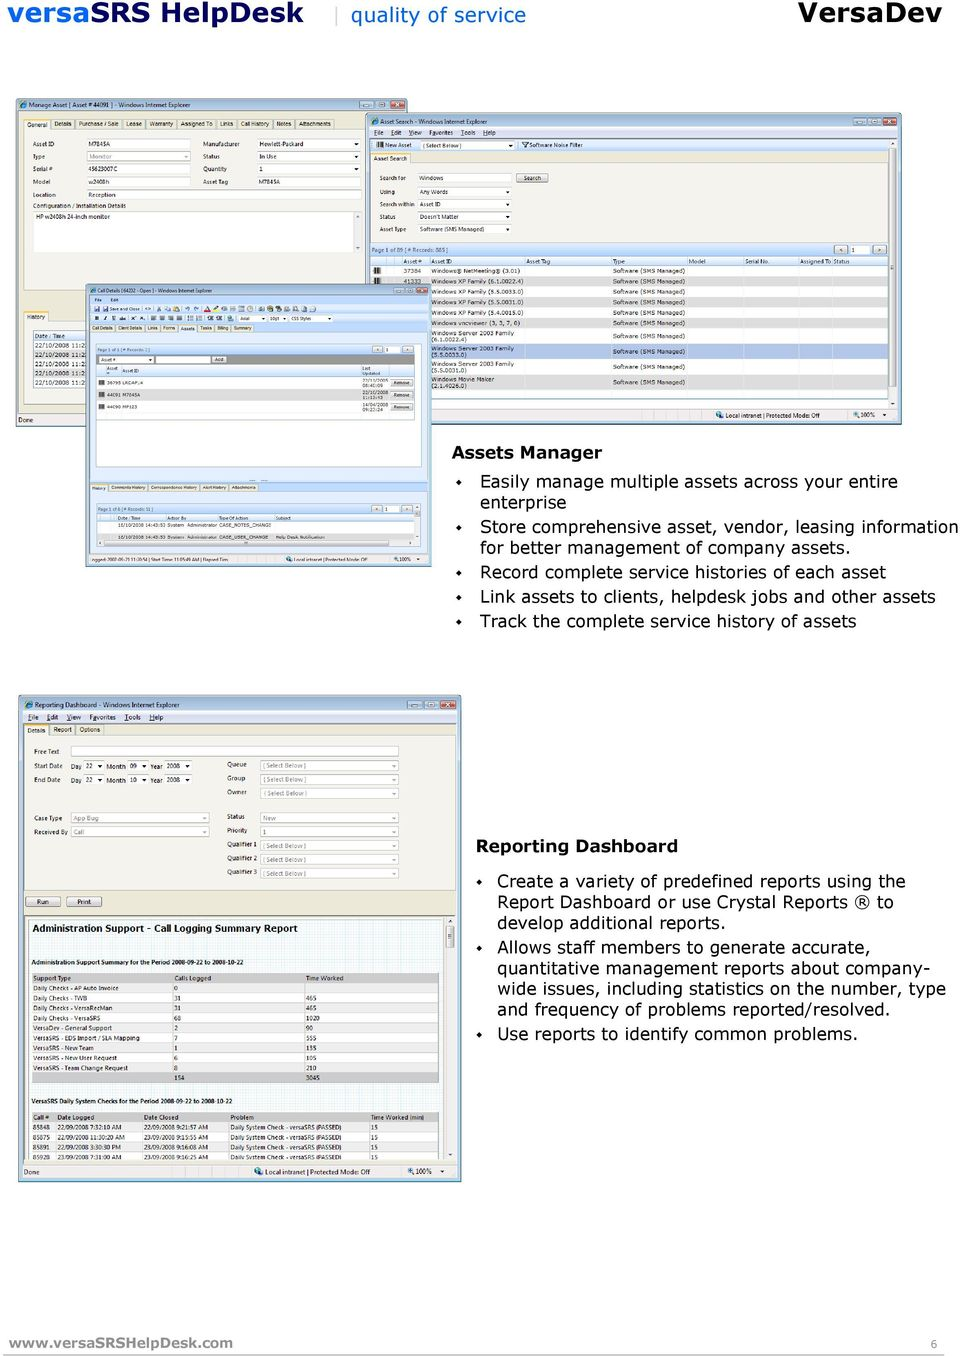 variety of predefined reports using the Report Dashboard or use Crystal Reports to develop additional reports.